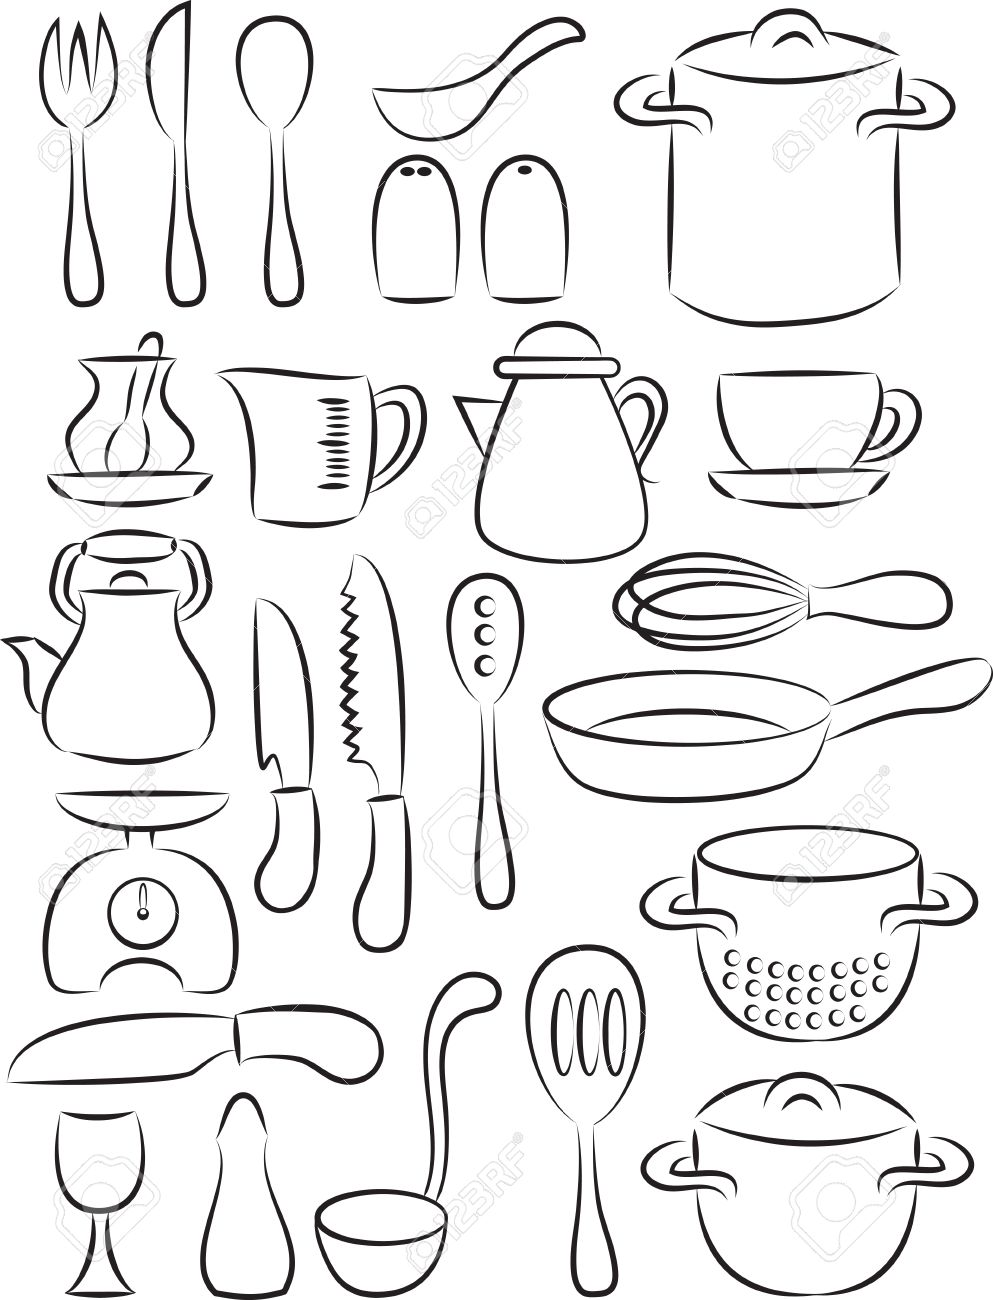 Cooking Utensils Coloring Pages Coloring Page